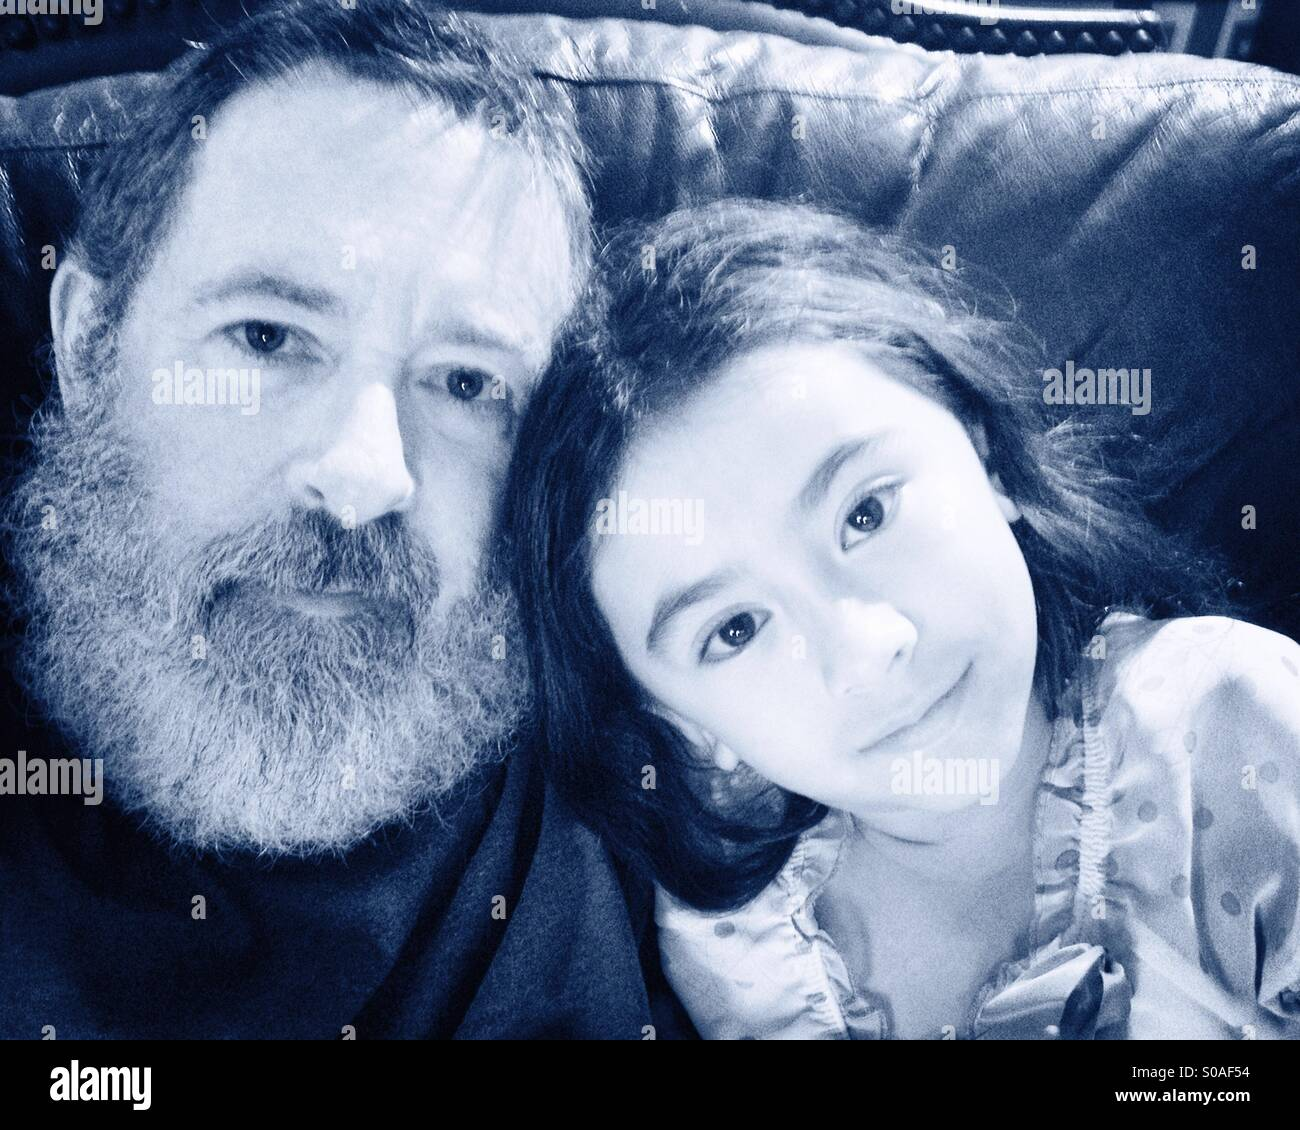 Father and daughter selfie. - Stock Image